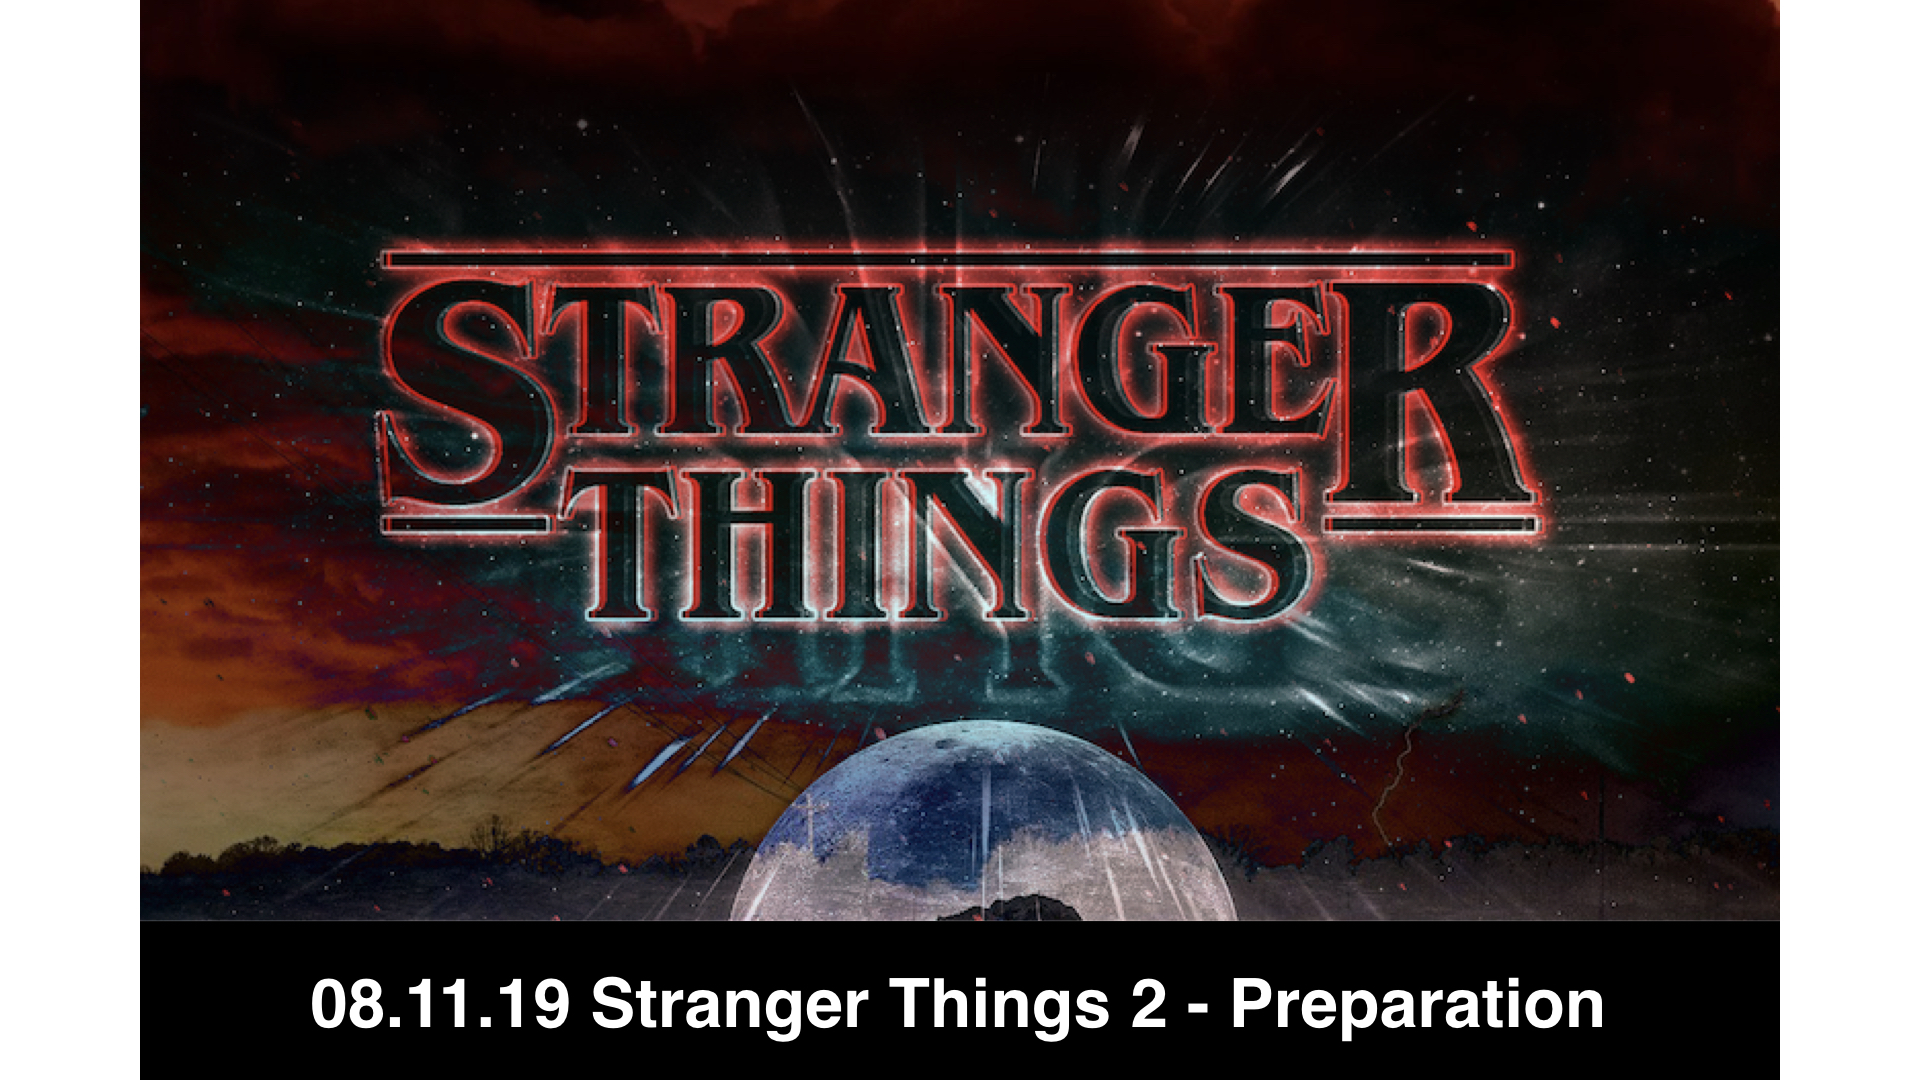 08.11.19 Stranger Things 2 - Preparation